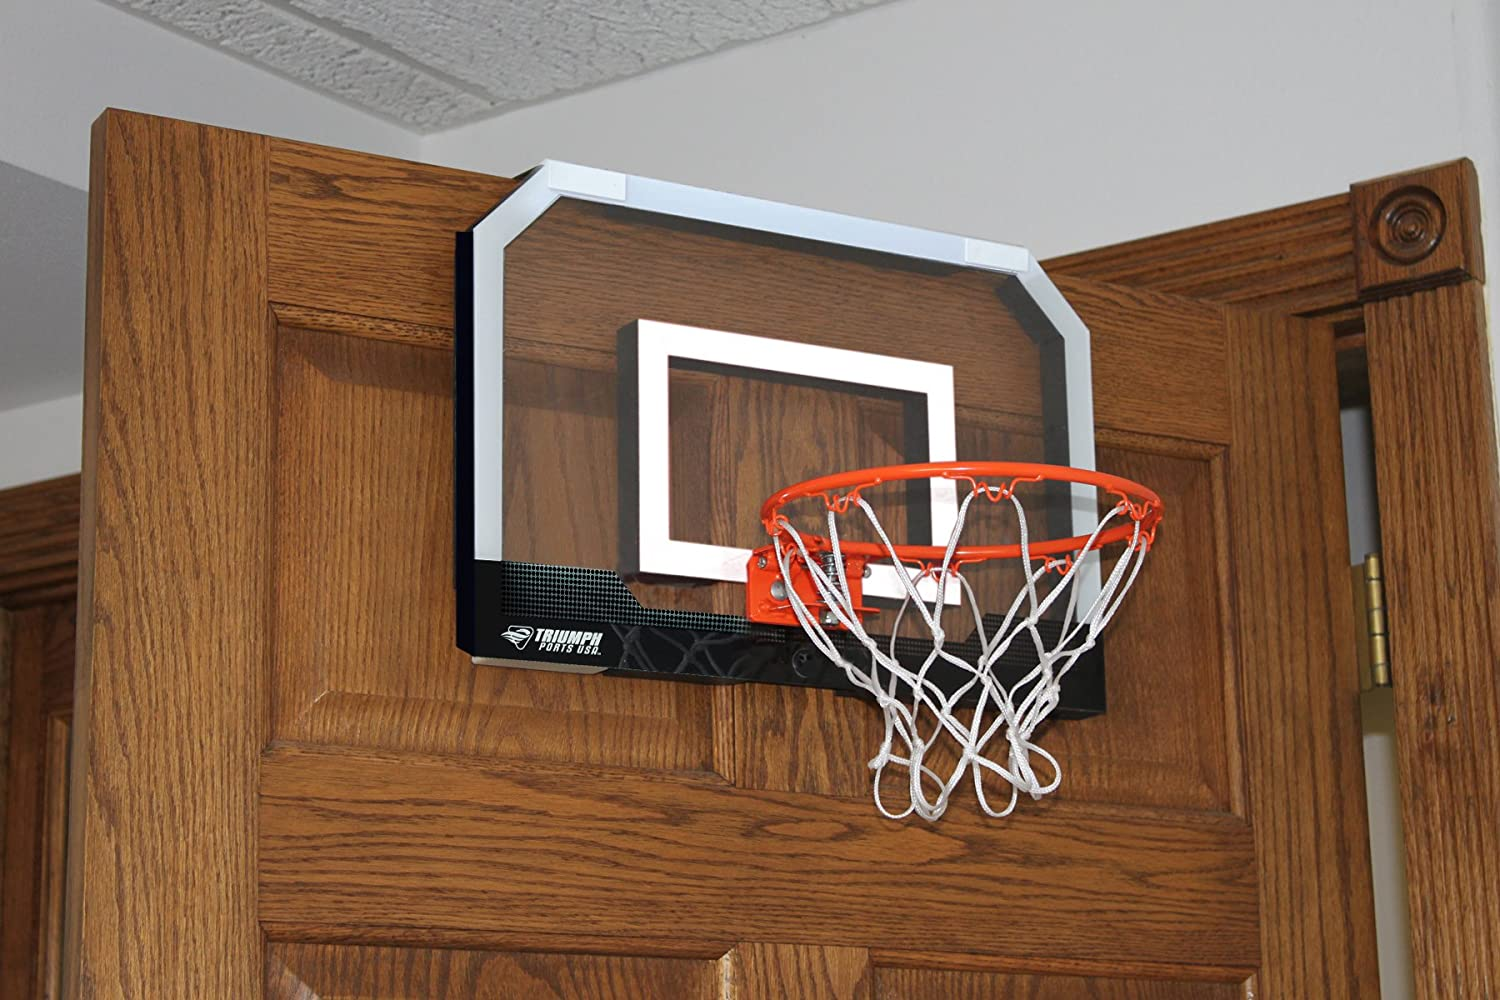 Amazon.com : Triumph Sports Door Court Basketball : Toy Basketball Products  : Sports U0026 Outdoors